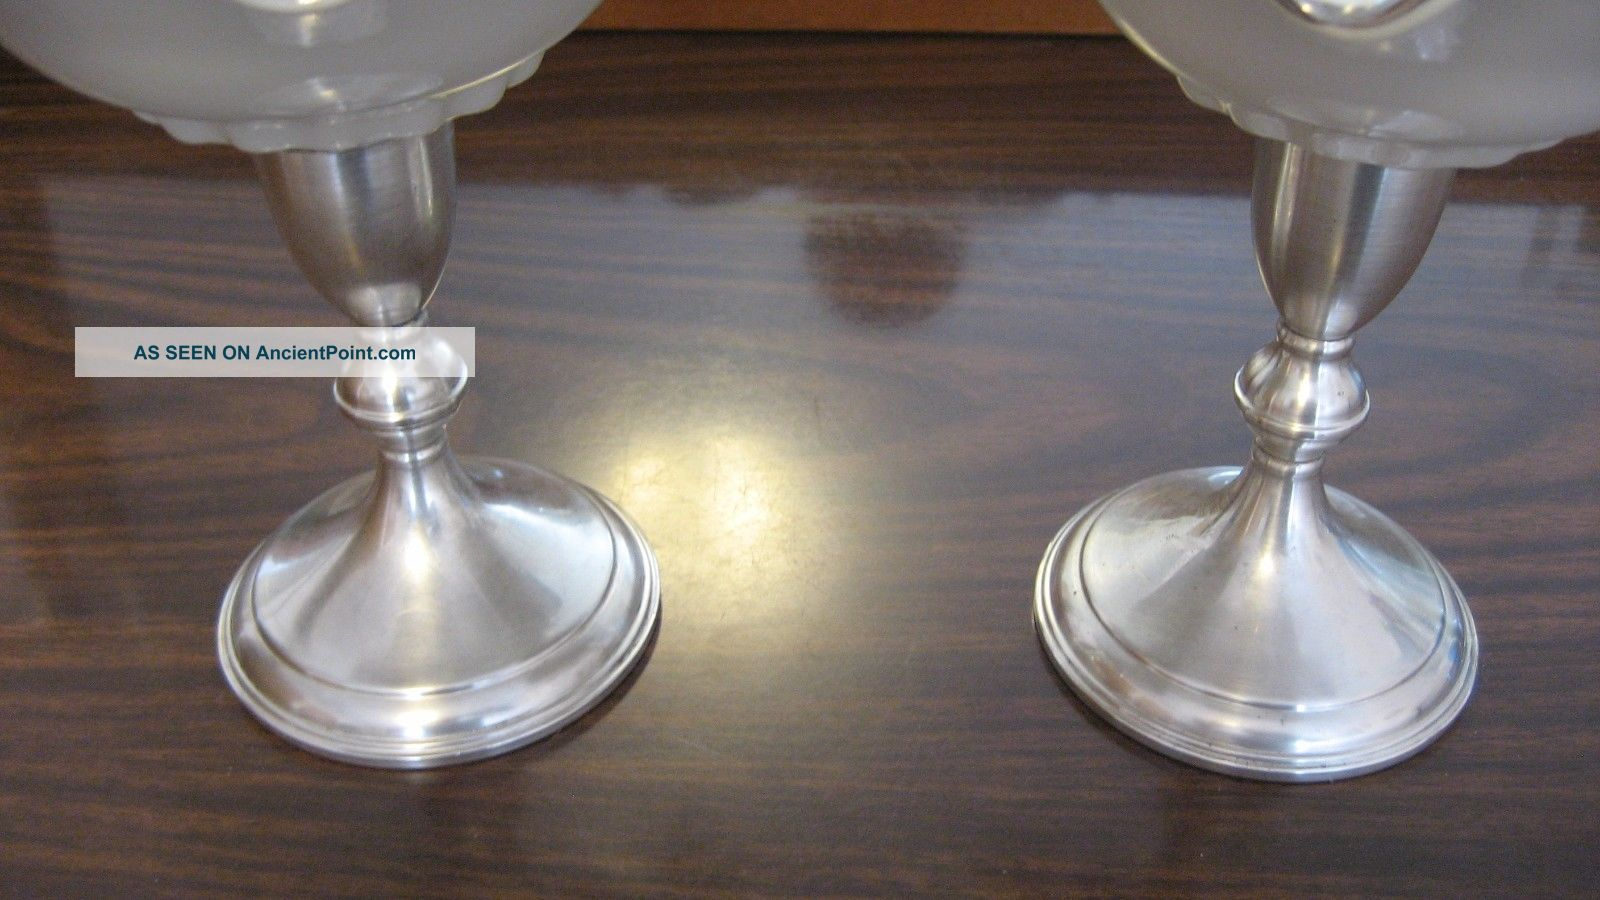 Preisner Sterling Silver Compote Candy Pedestal Dishes Other Antique Sterling Silver photo